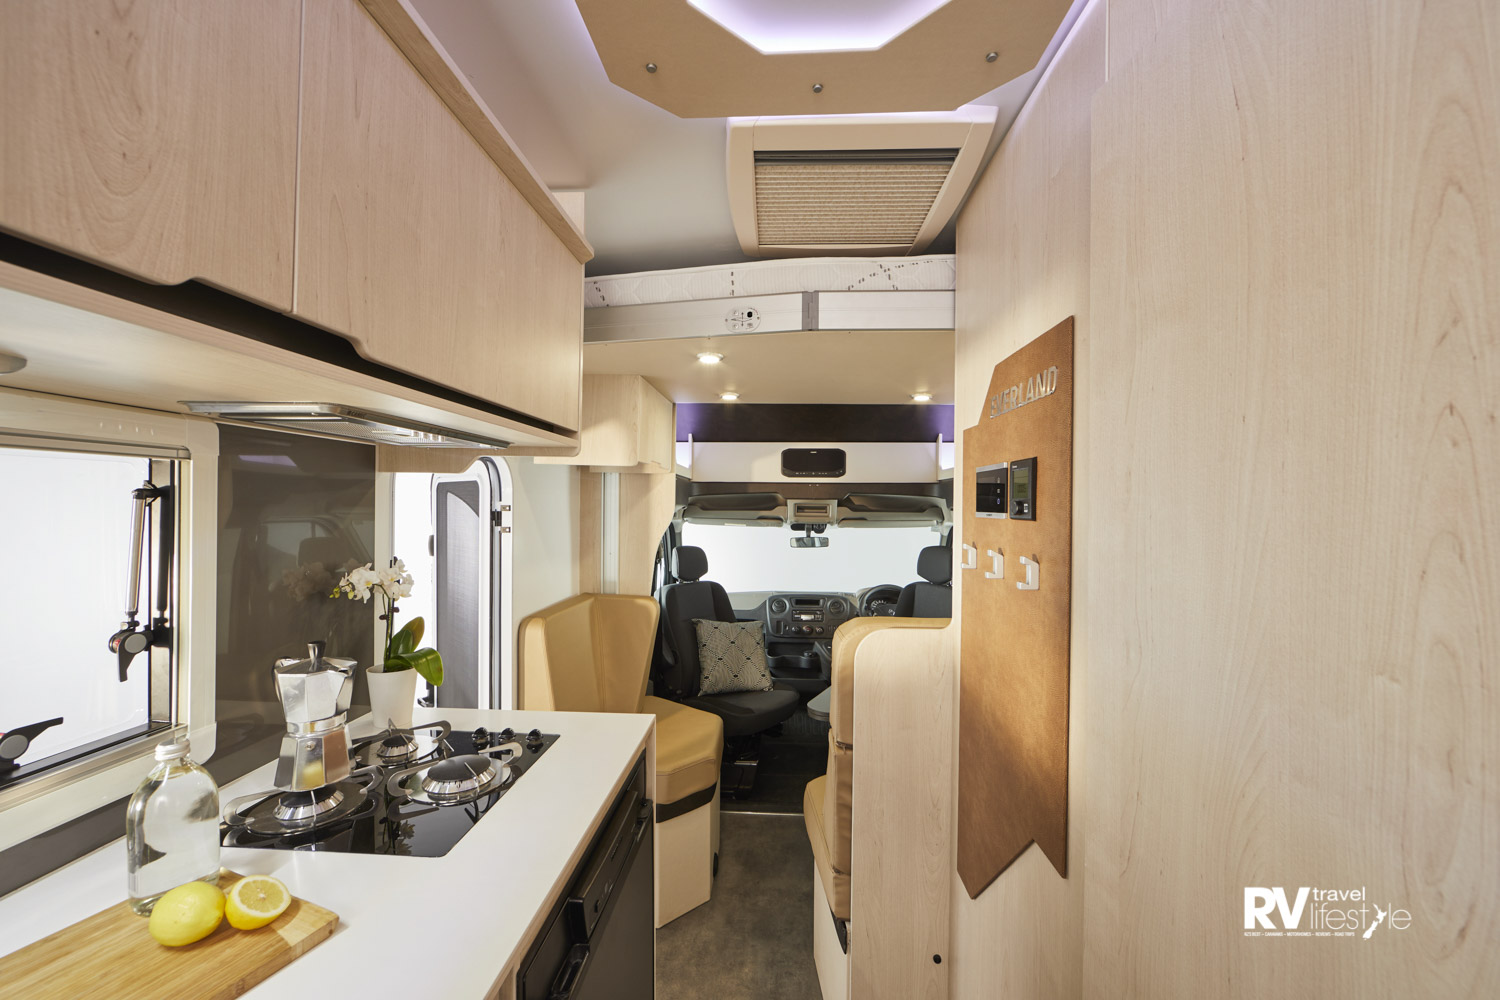 Stylish interior and well-designed kitchen give the motorhome a bright and airy feeling